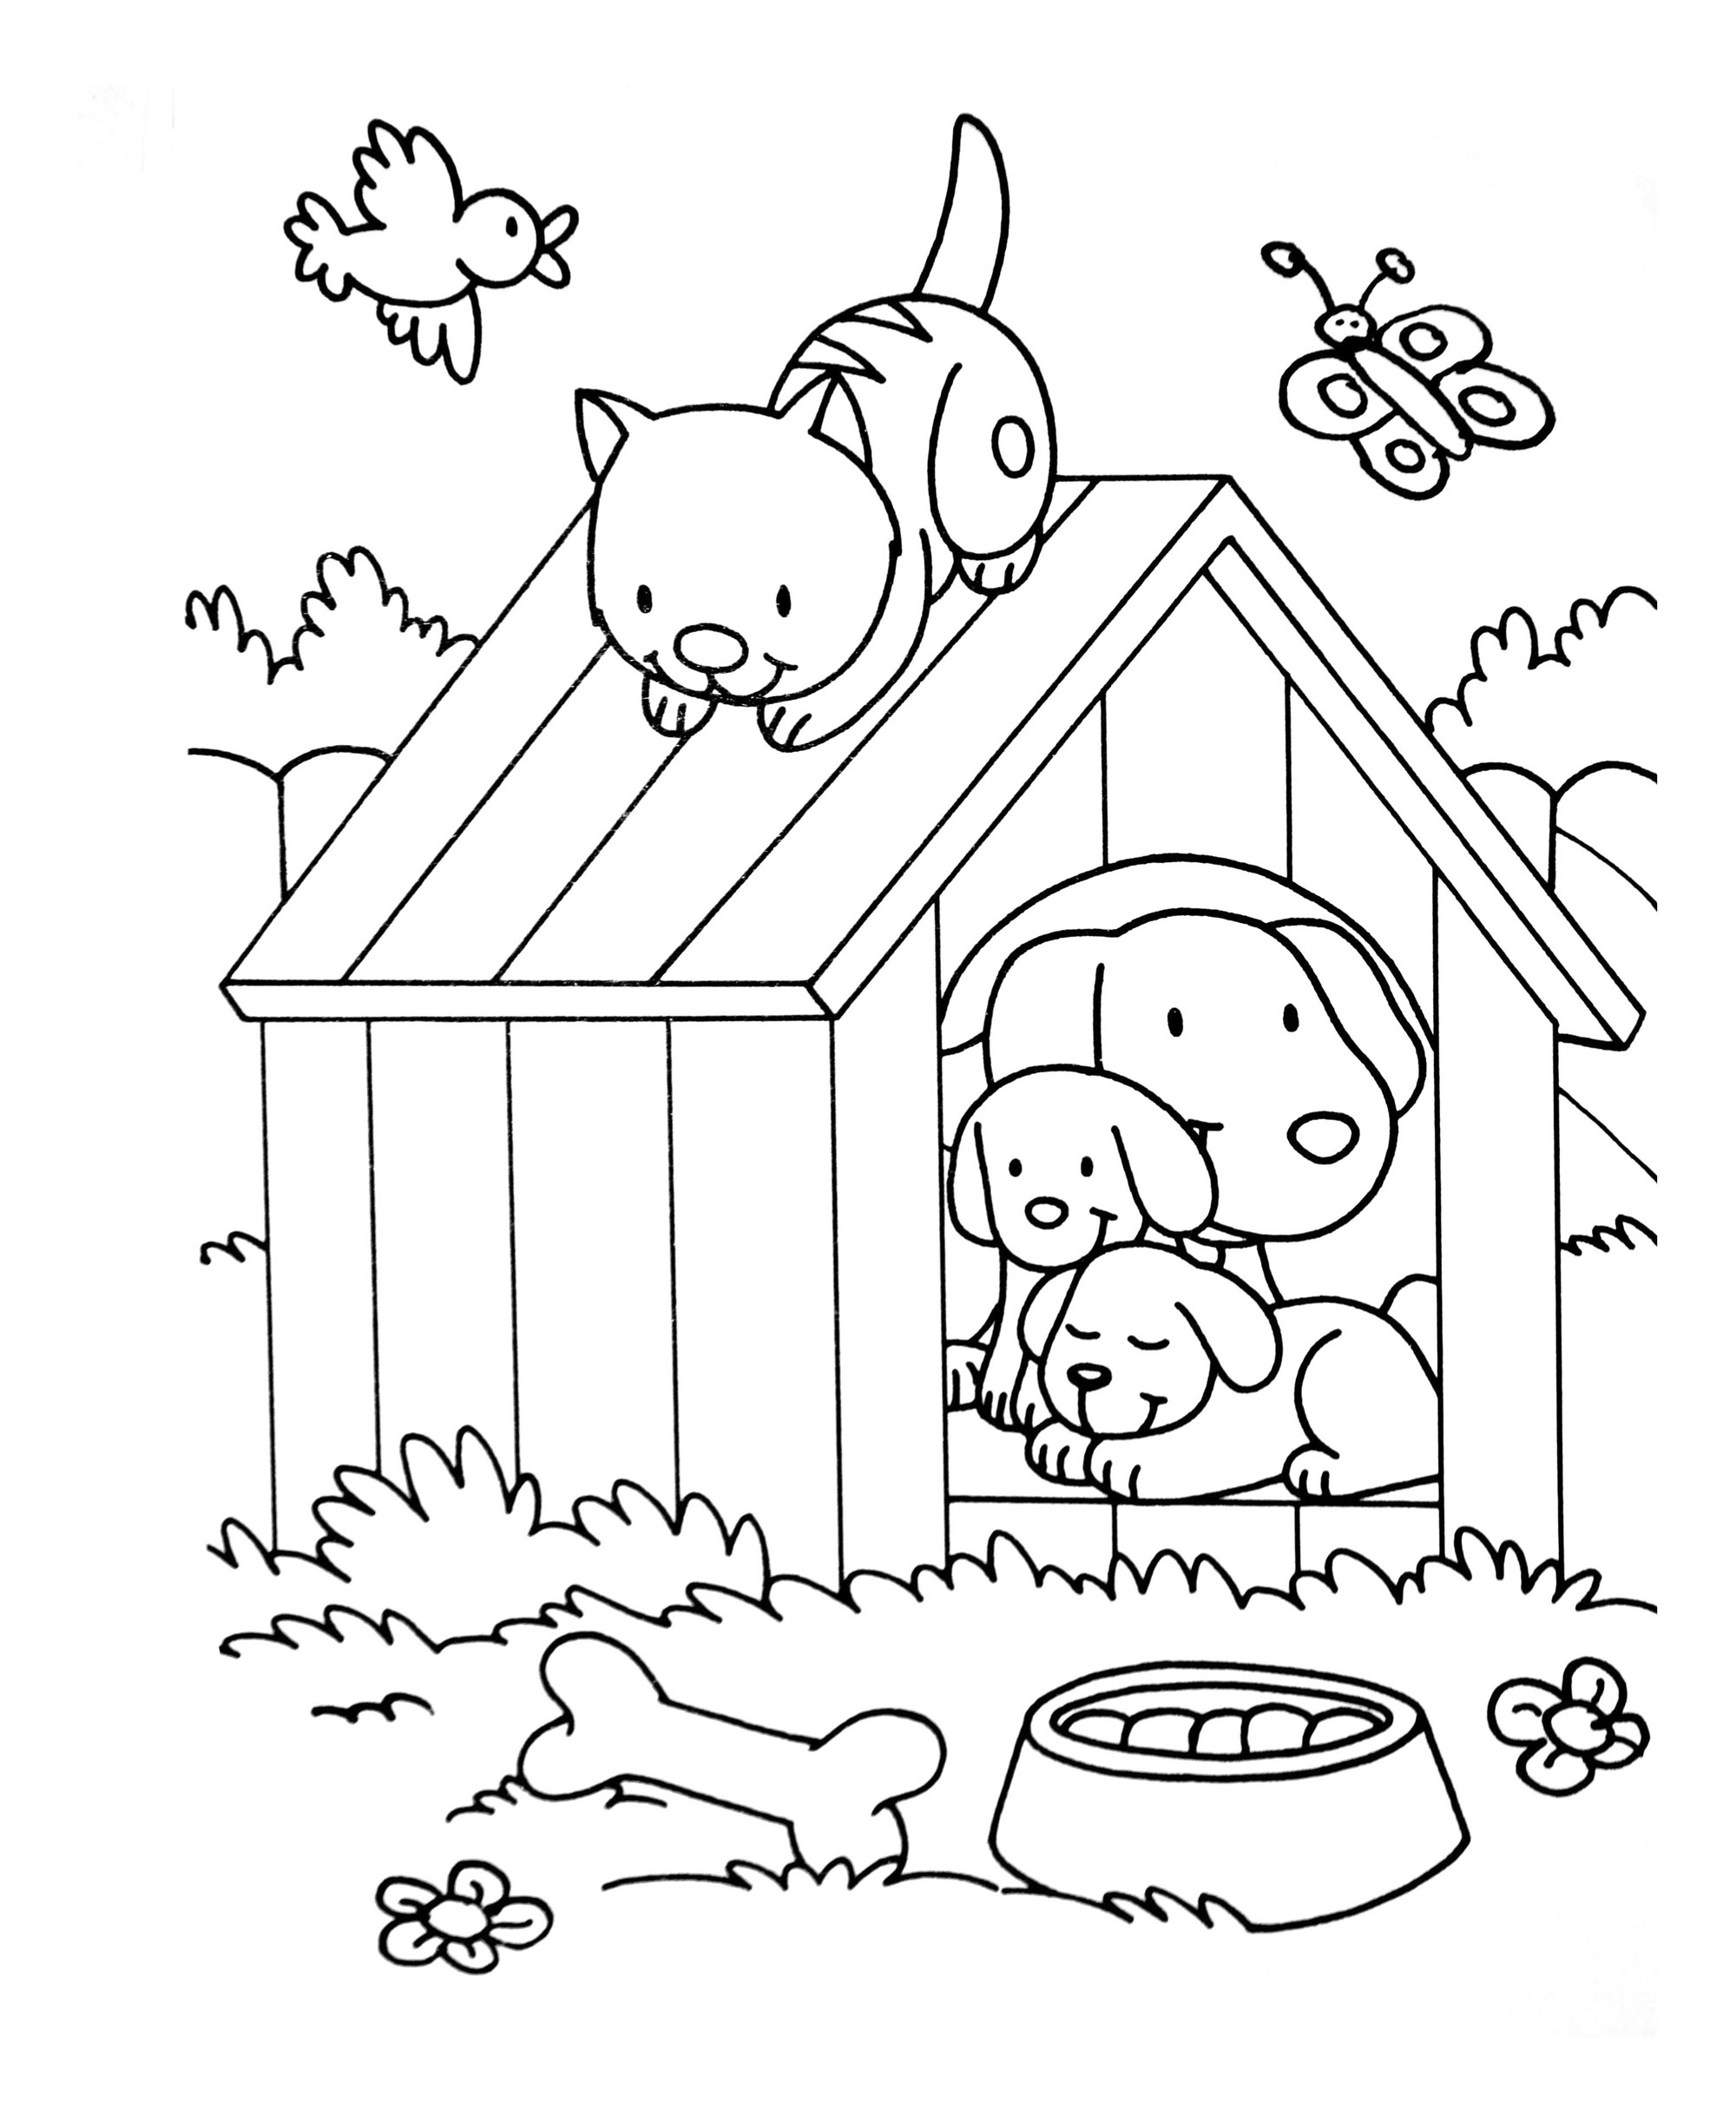 Cat free to color for kids : Kennel with cats and dogs - Cats Kids Coloring Pages